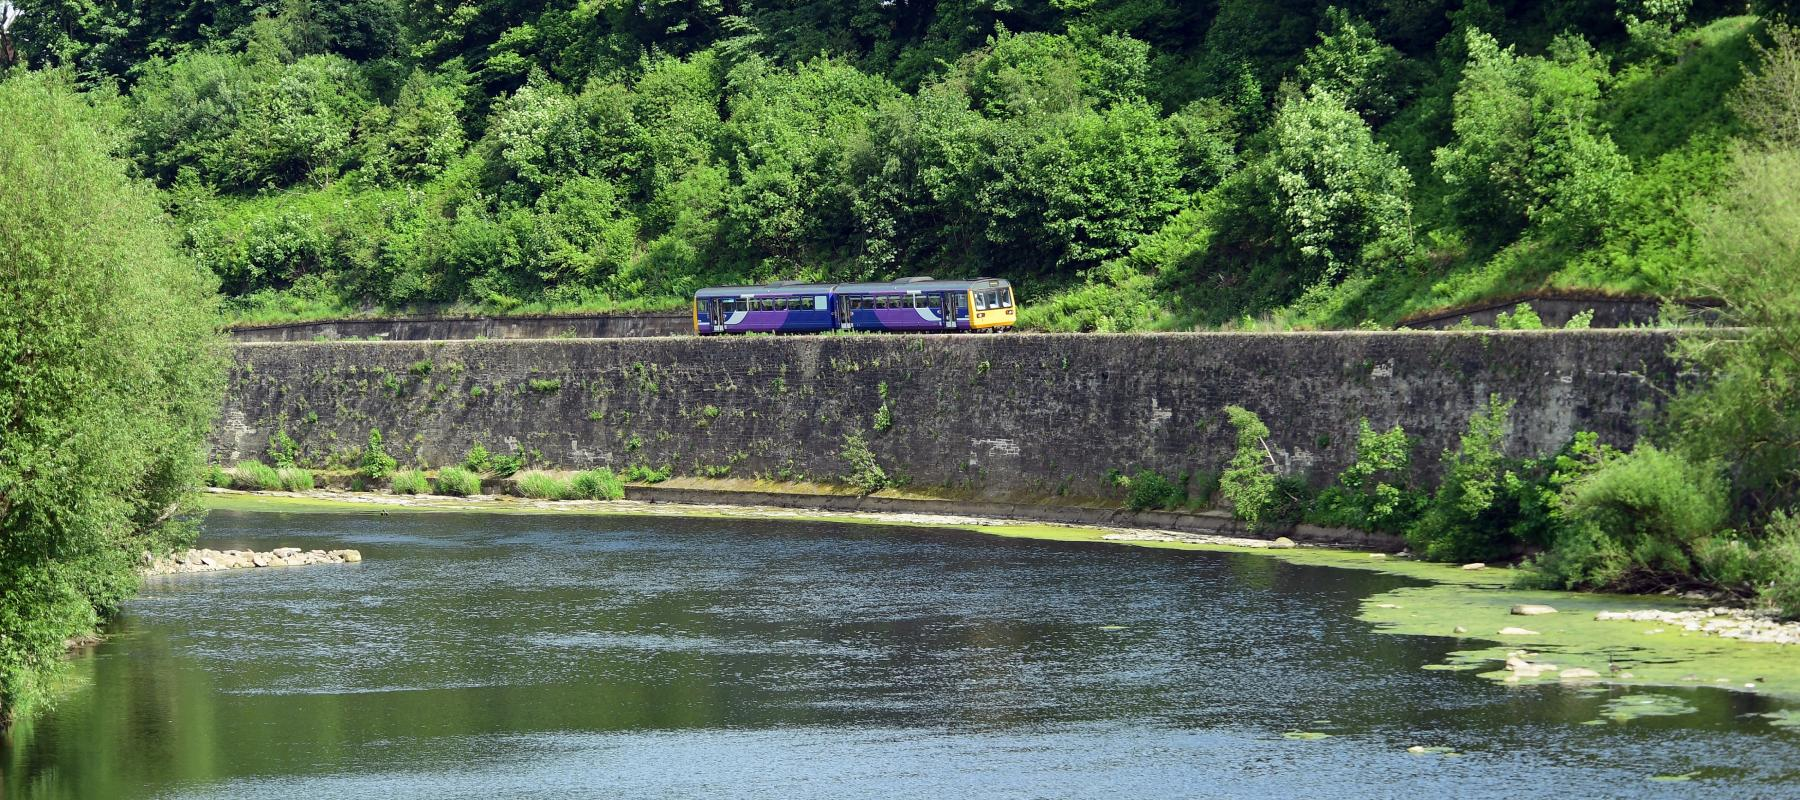 Explore the historic Tyne Valley scenic rail line in Britain